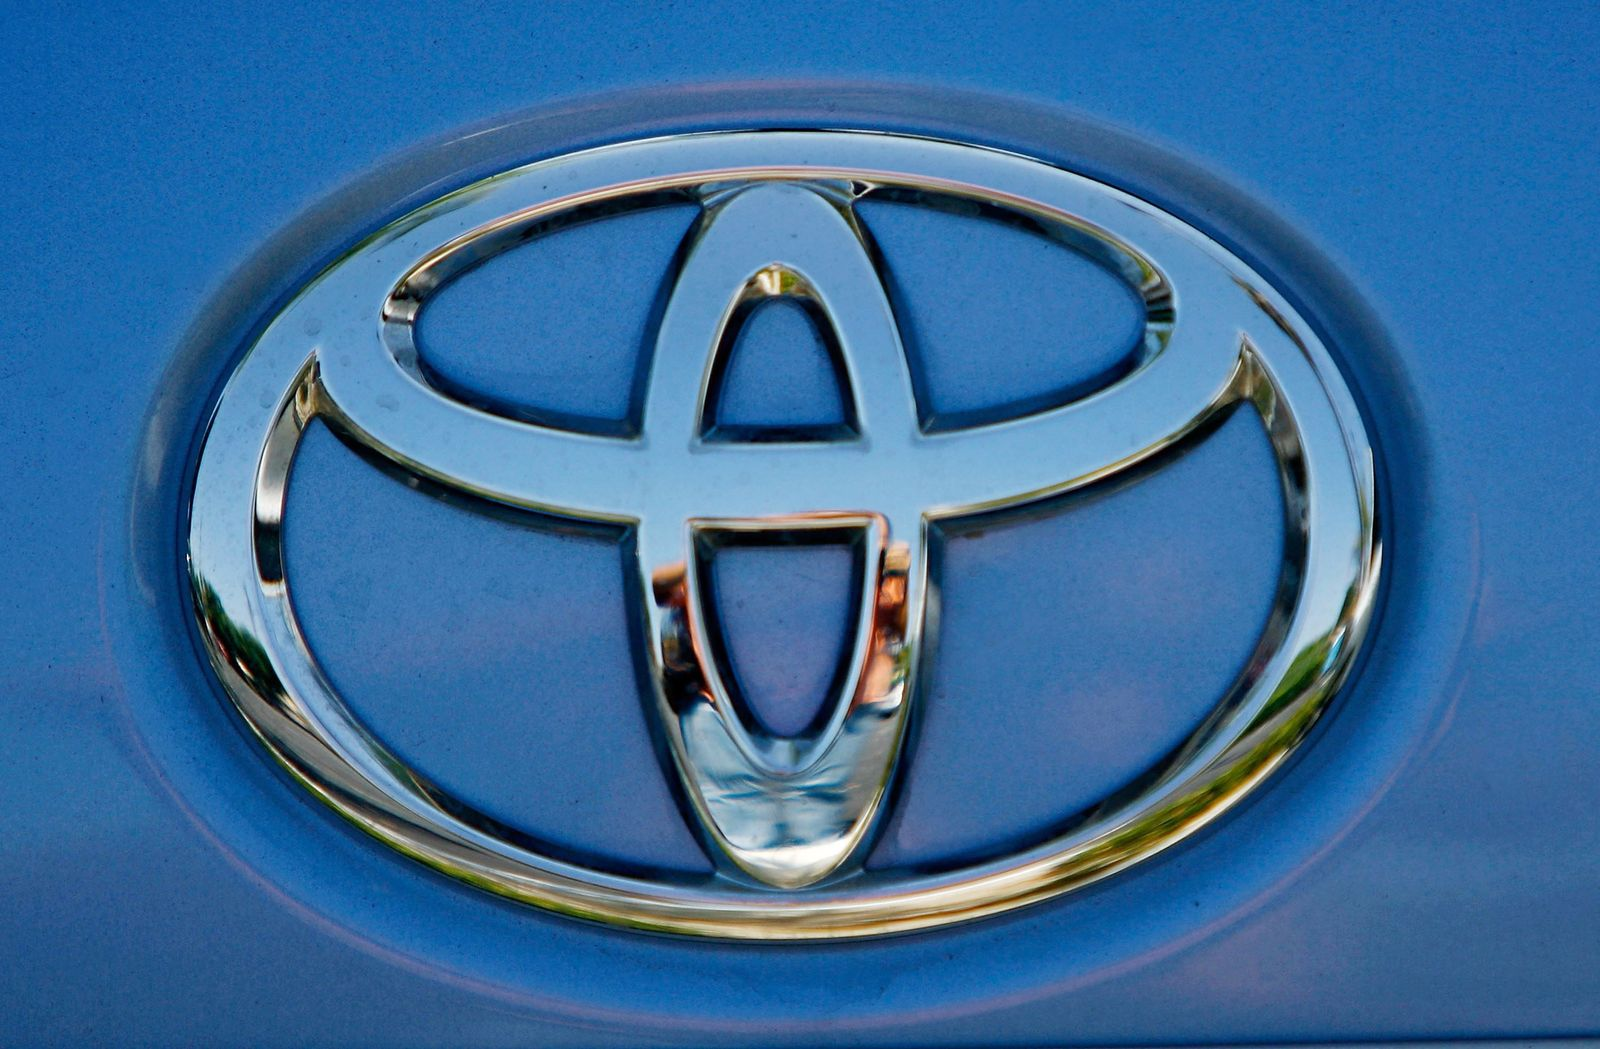 TOYOTA BEATS GM IN WORLDWIDE SALES IN SECOND QUARTER OF 2008